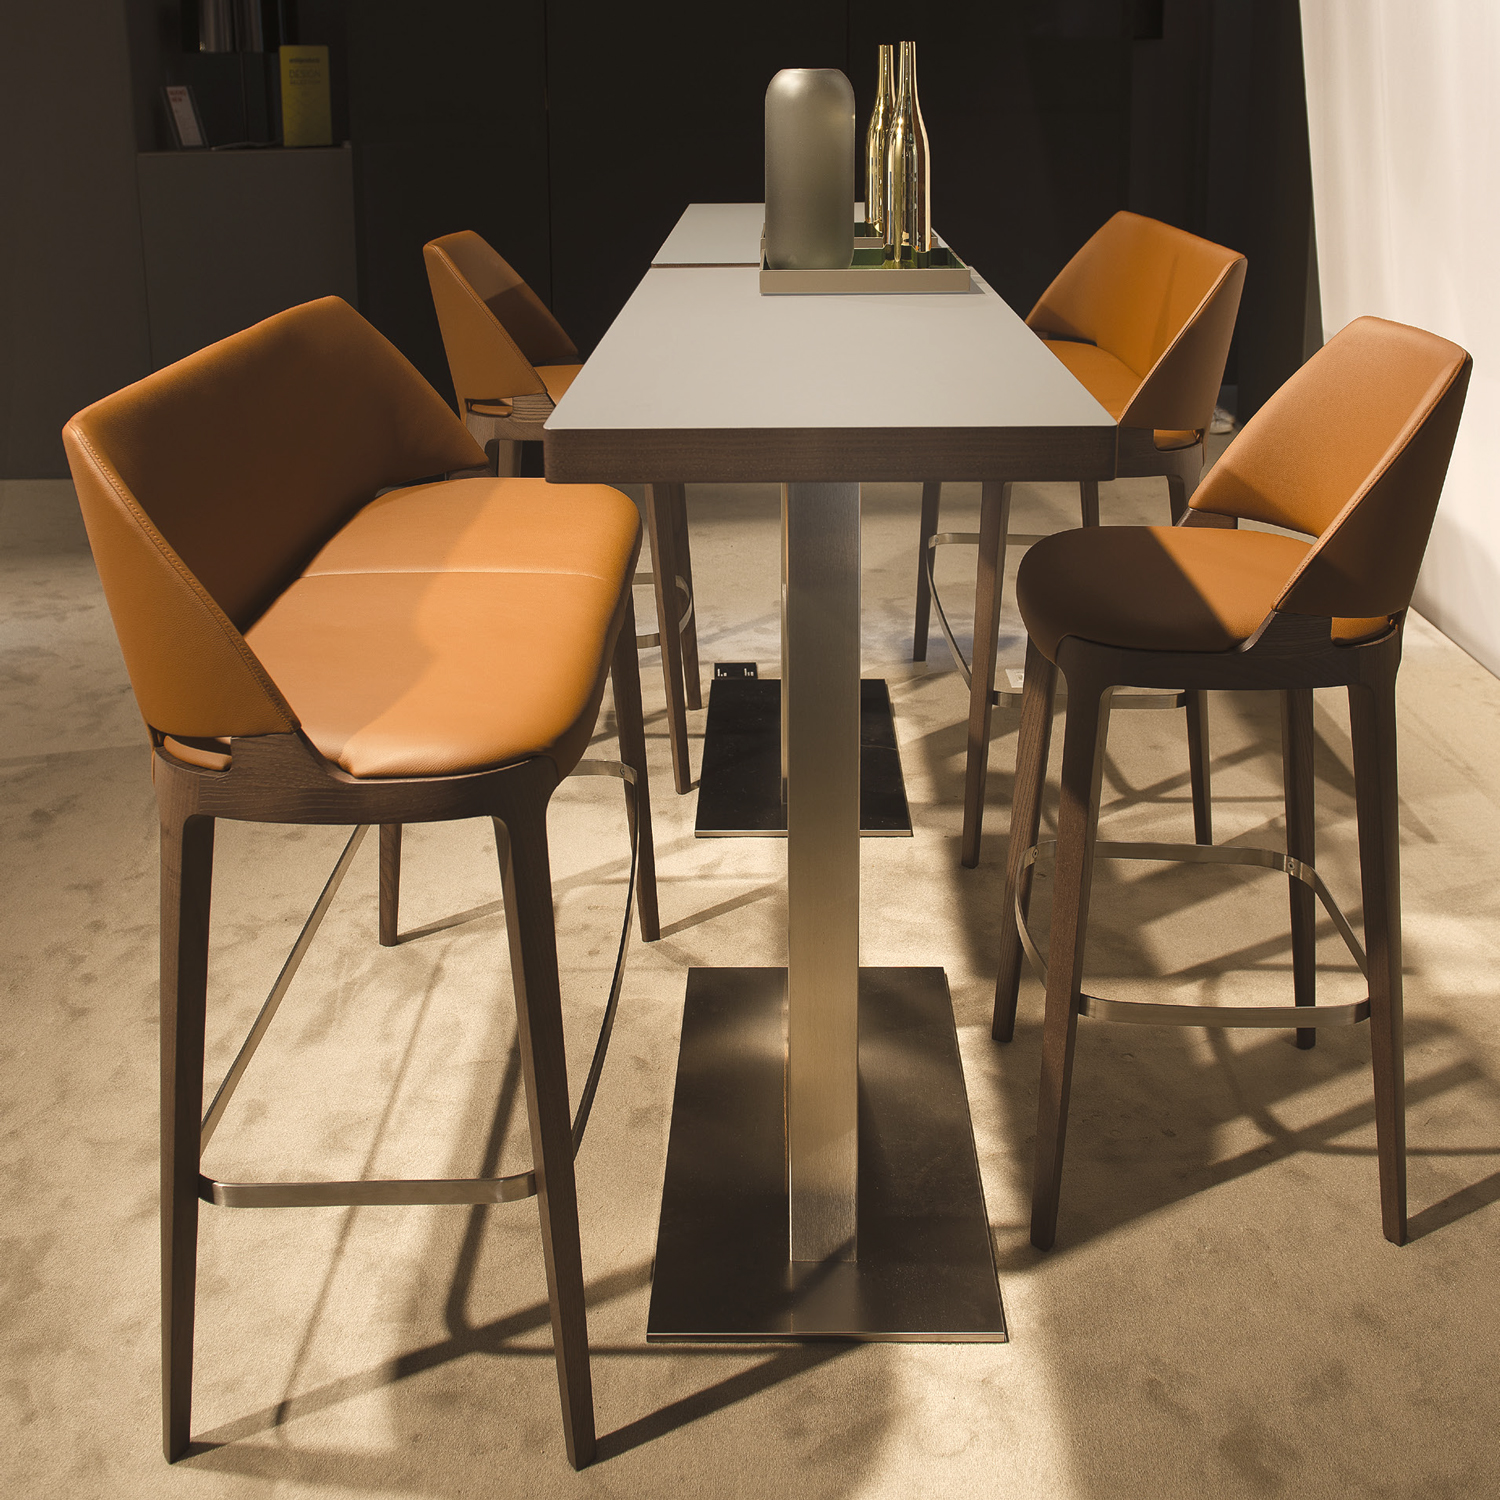 Luxury Bar Stools Luxury Italian Designermasai Bar Table Italian Designer